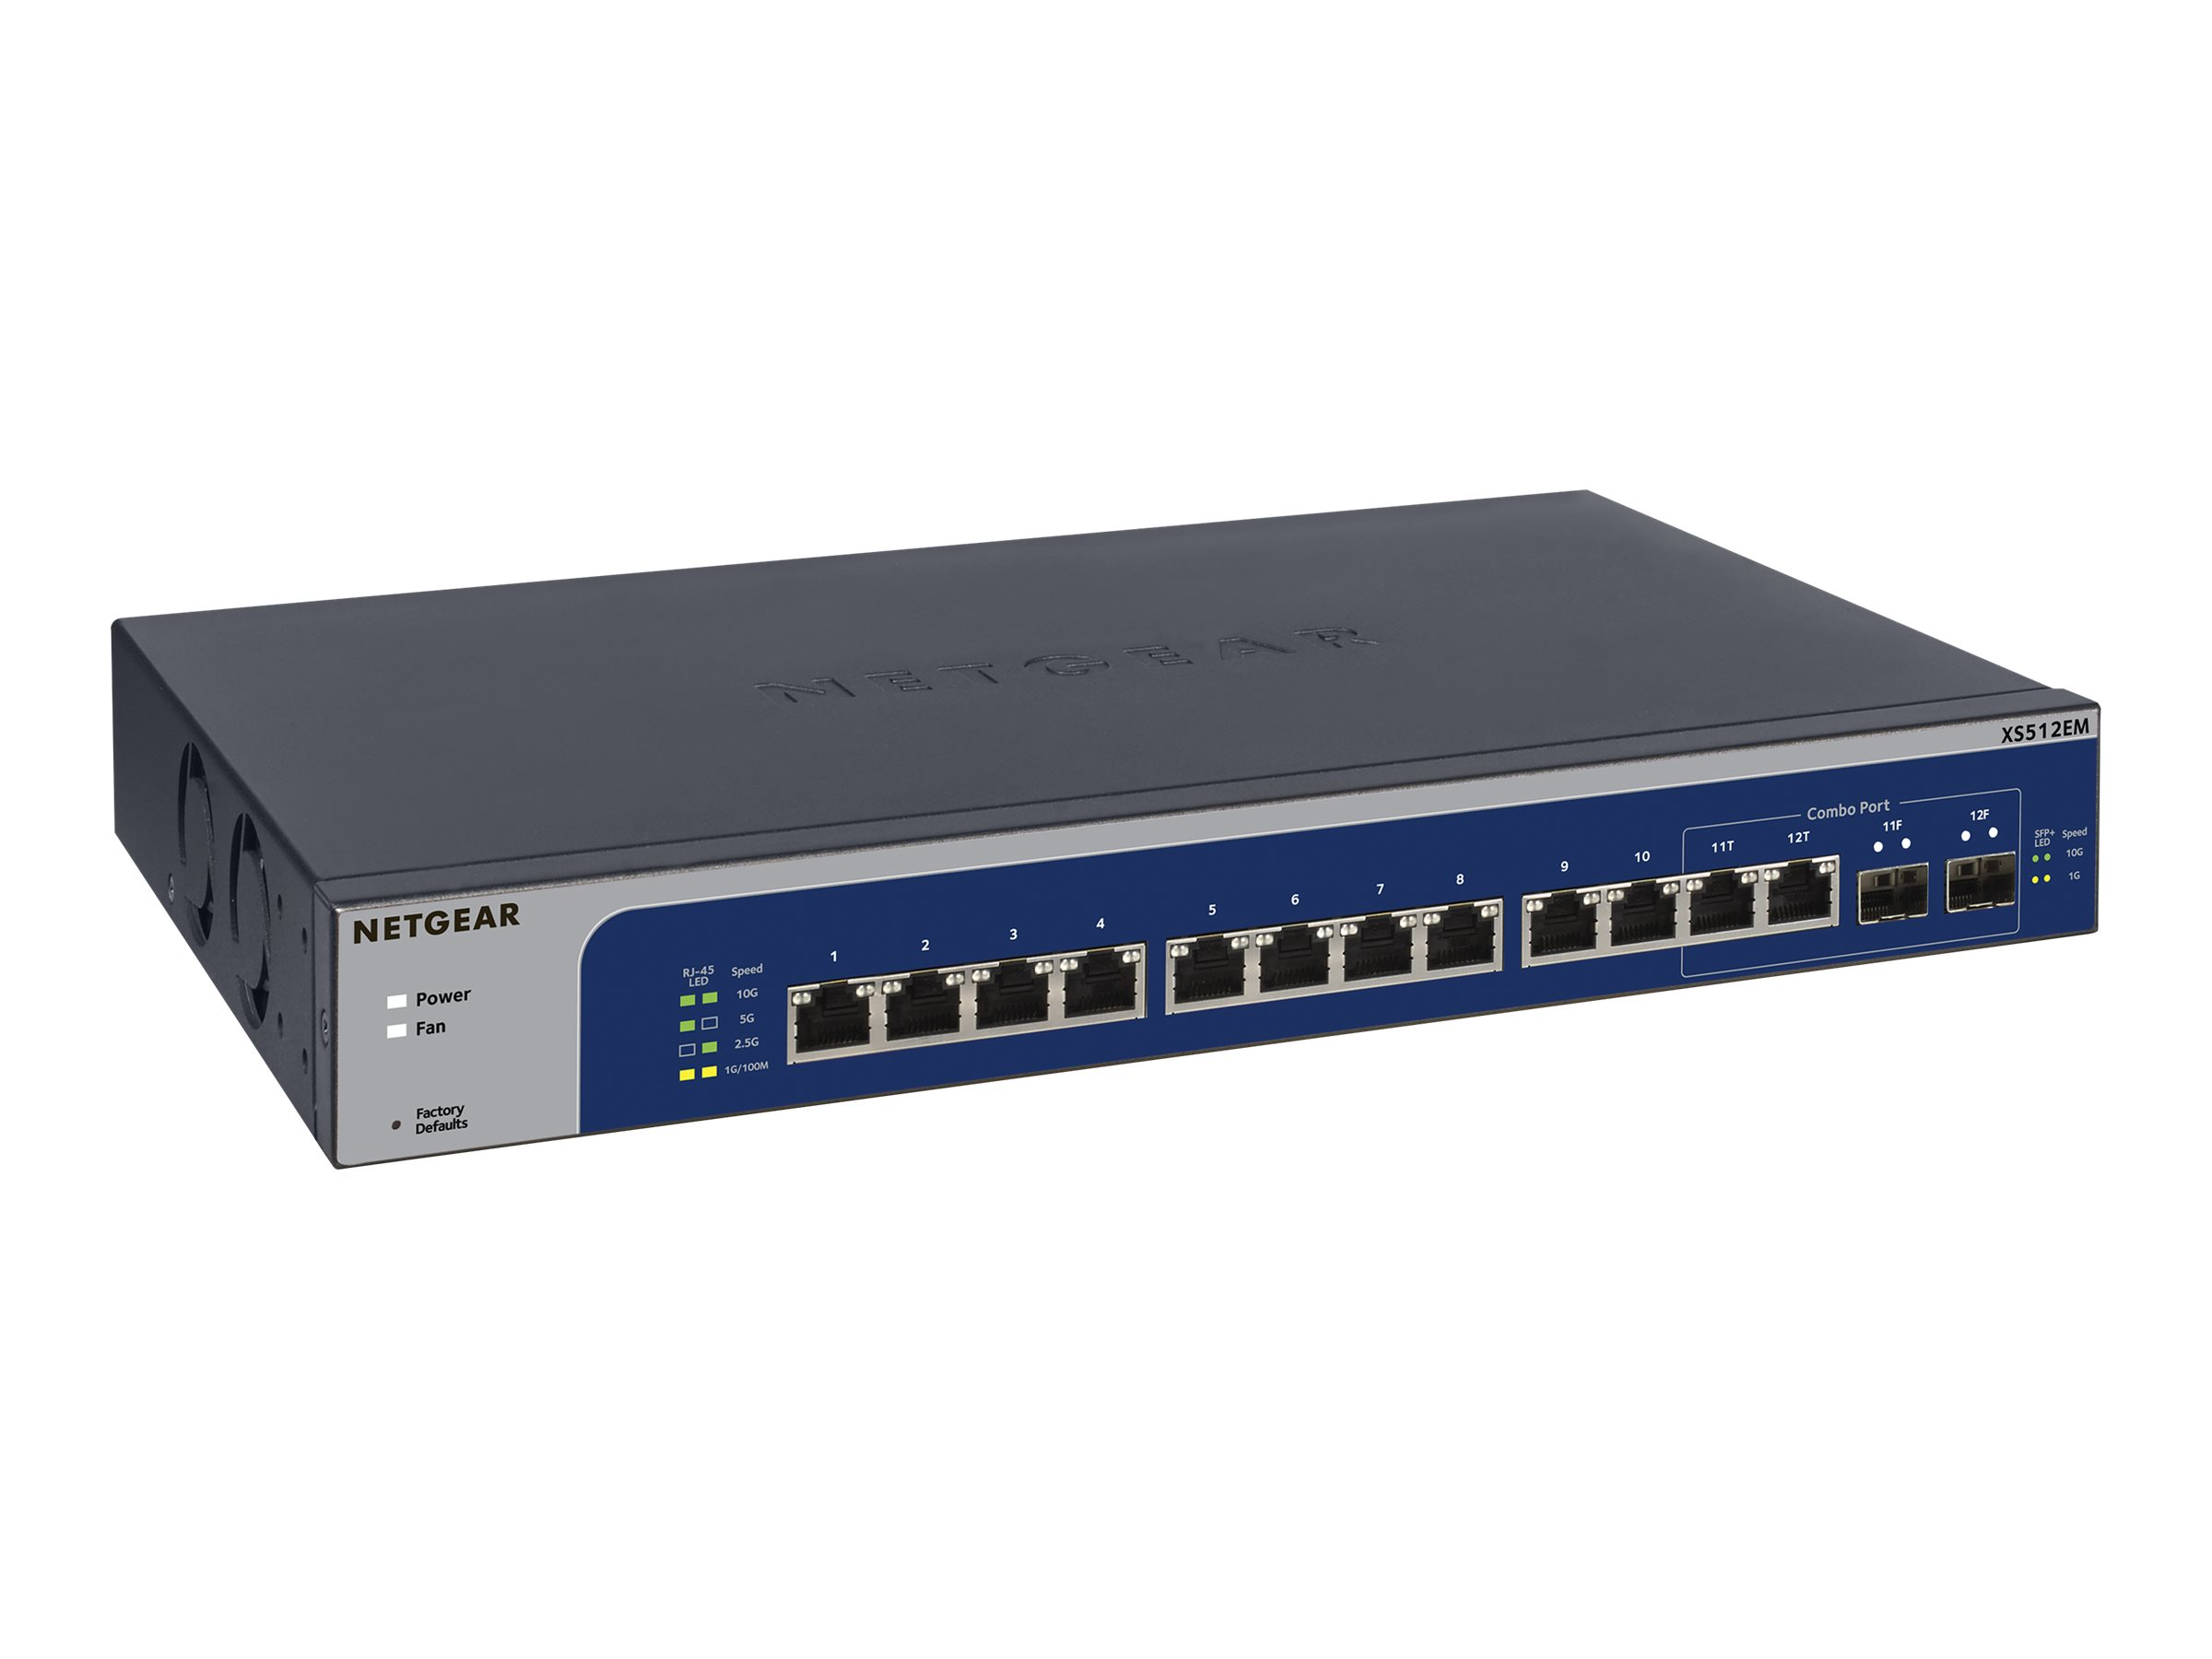 NETGEAR Plus XS512EM - switch - 12 ports - managed - rack-mountable